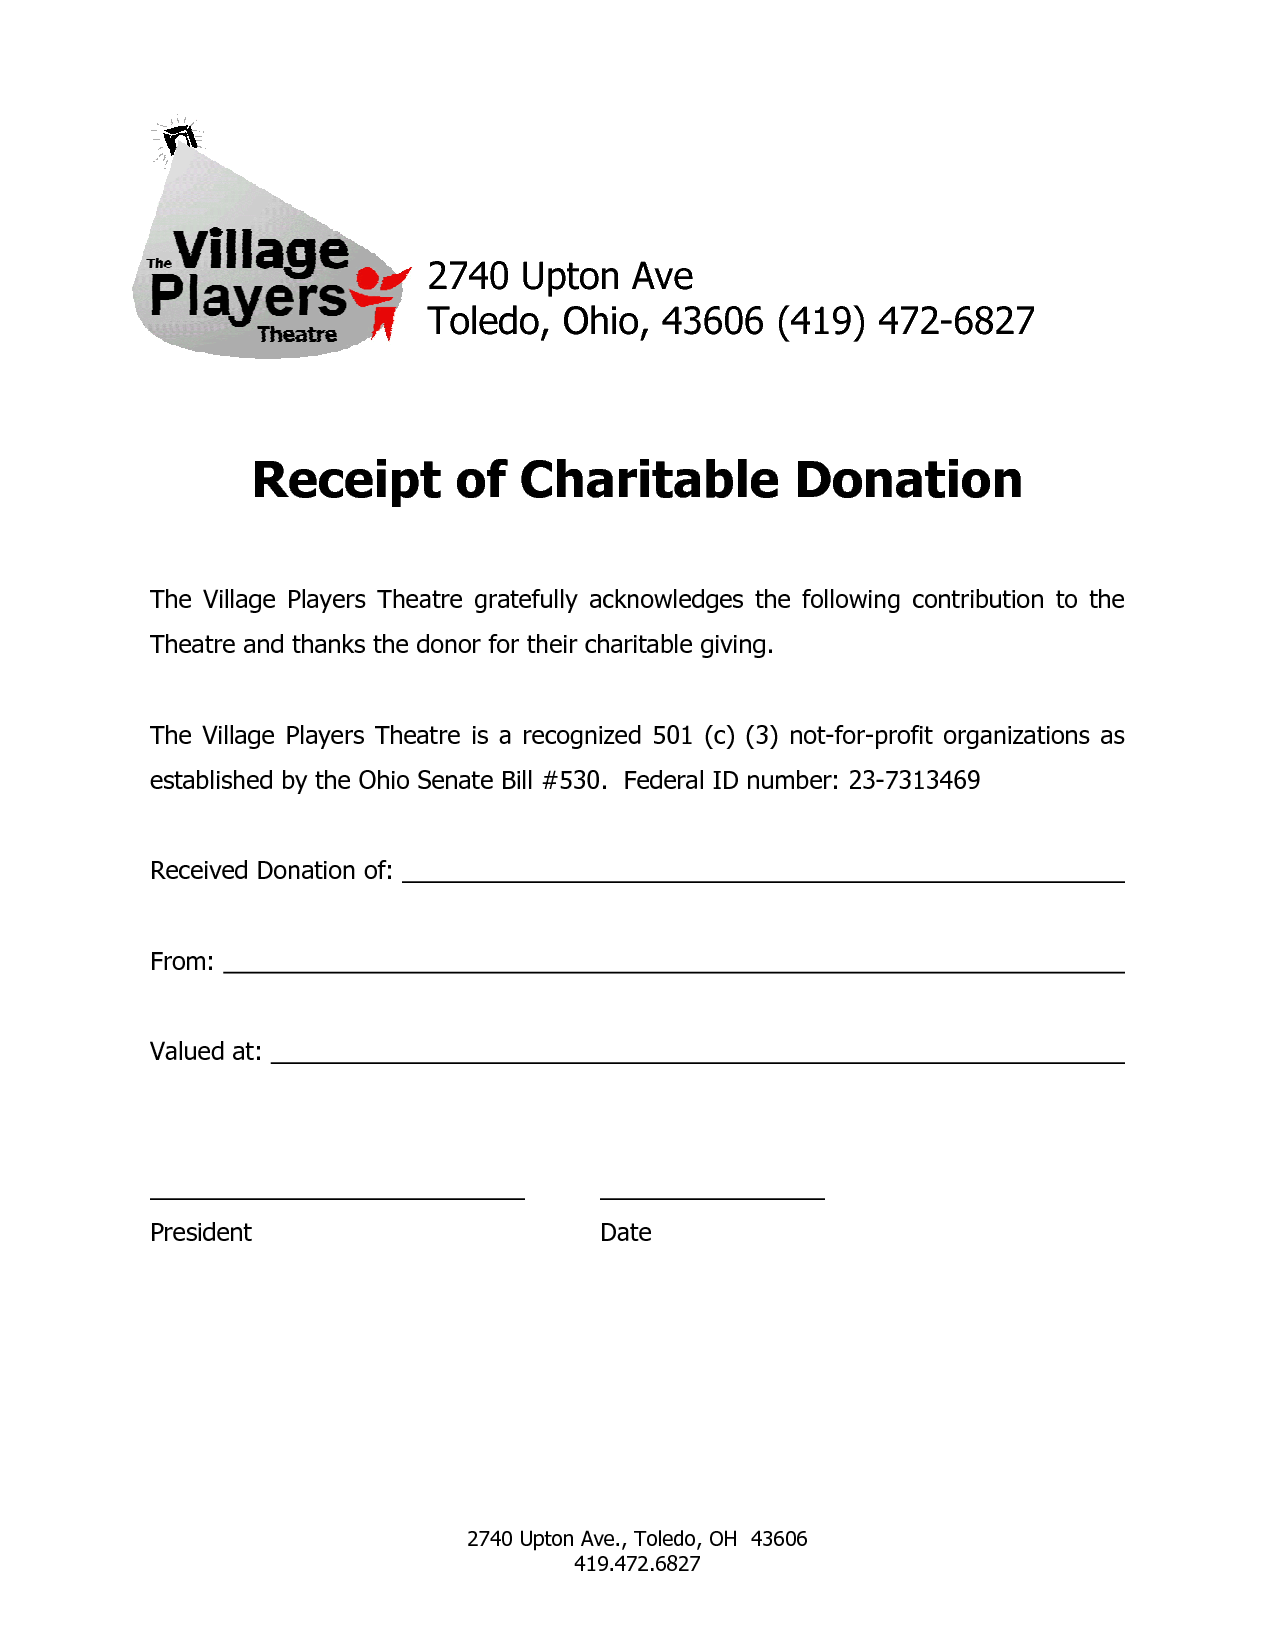 Letter Template Tax Donation Receipt And Sample Charity